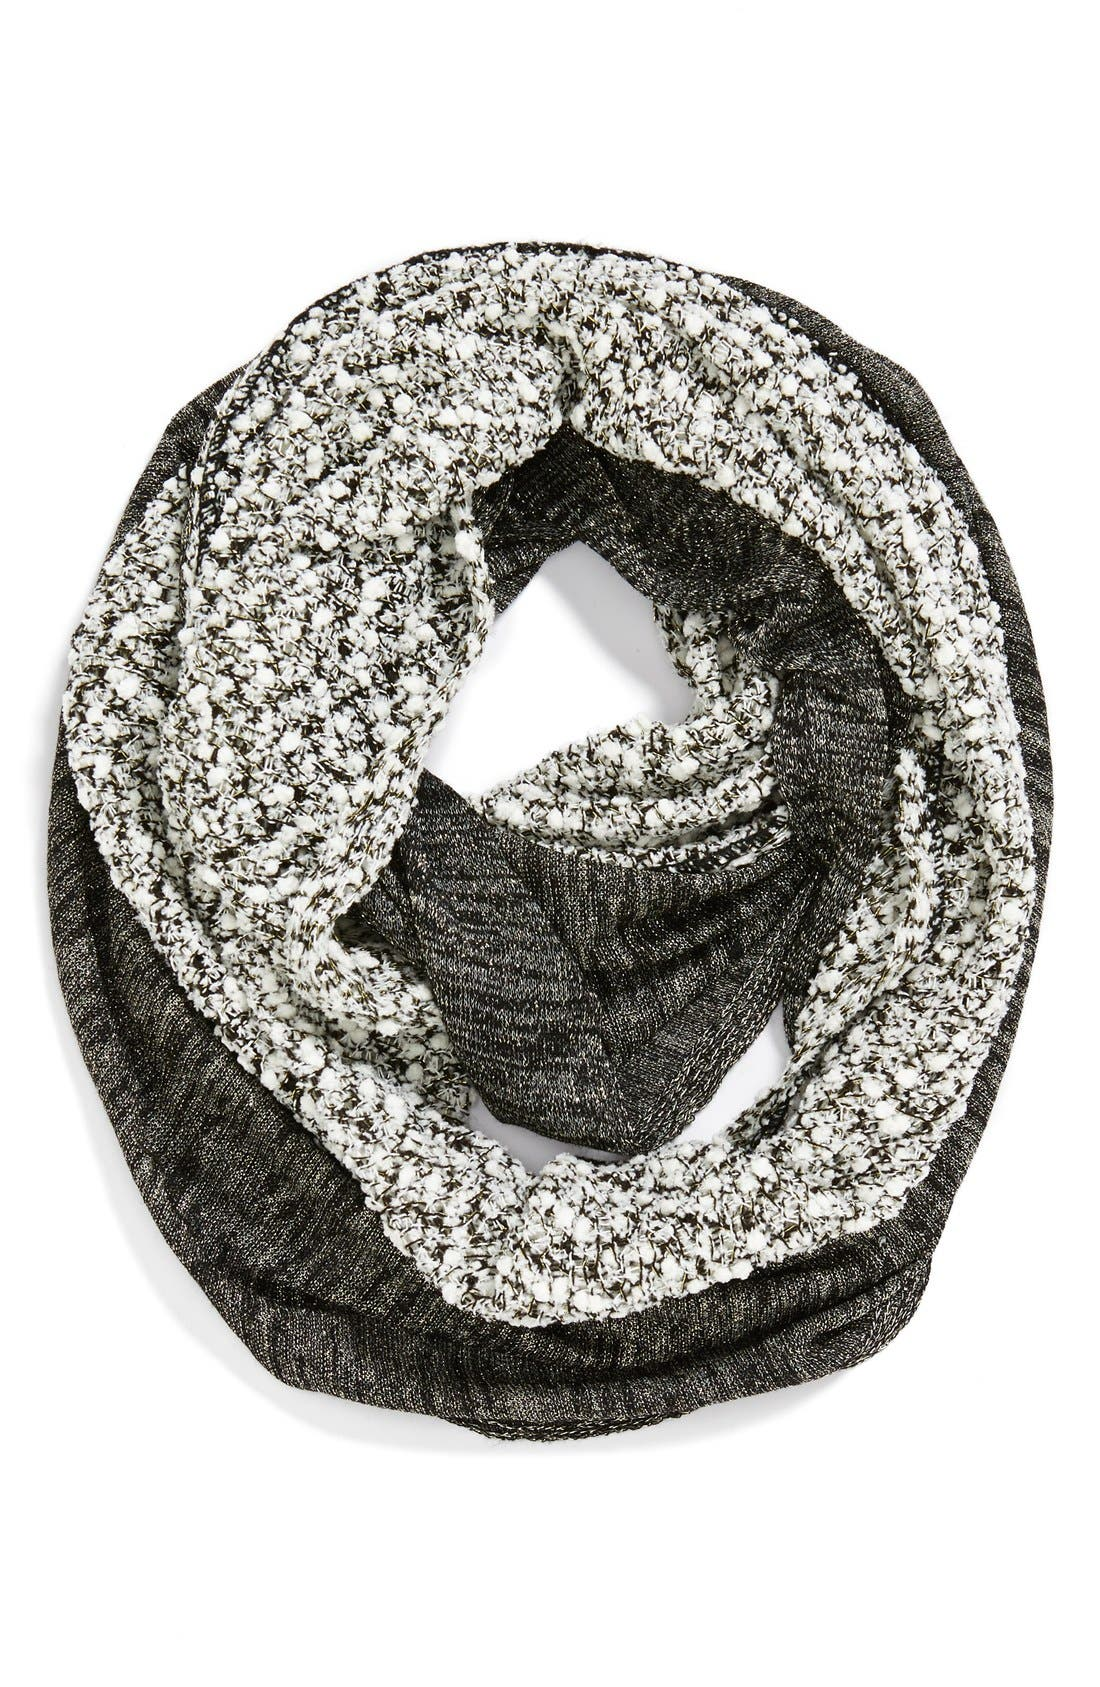 Alternate Image 1 Selected - Collection XIIX Metallic Confetti Mixed Media Infinity Scarf